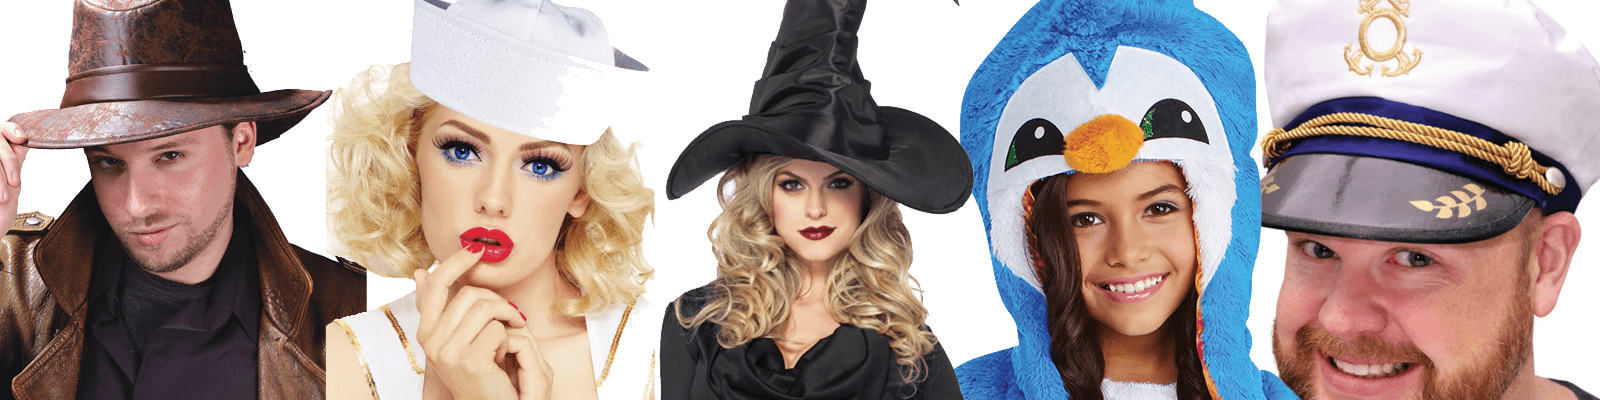 0ae178298 Huge selection of the most popular Hats for Halloween and other ...